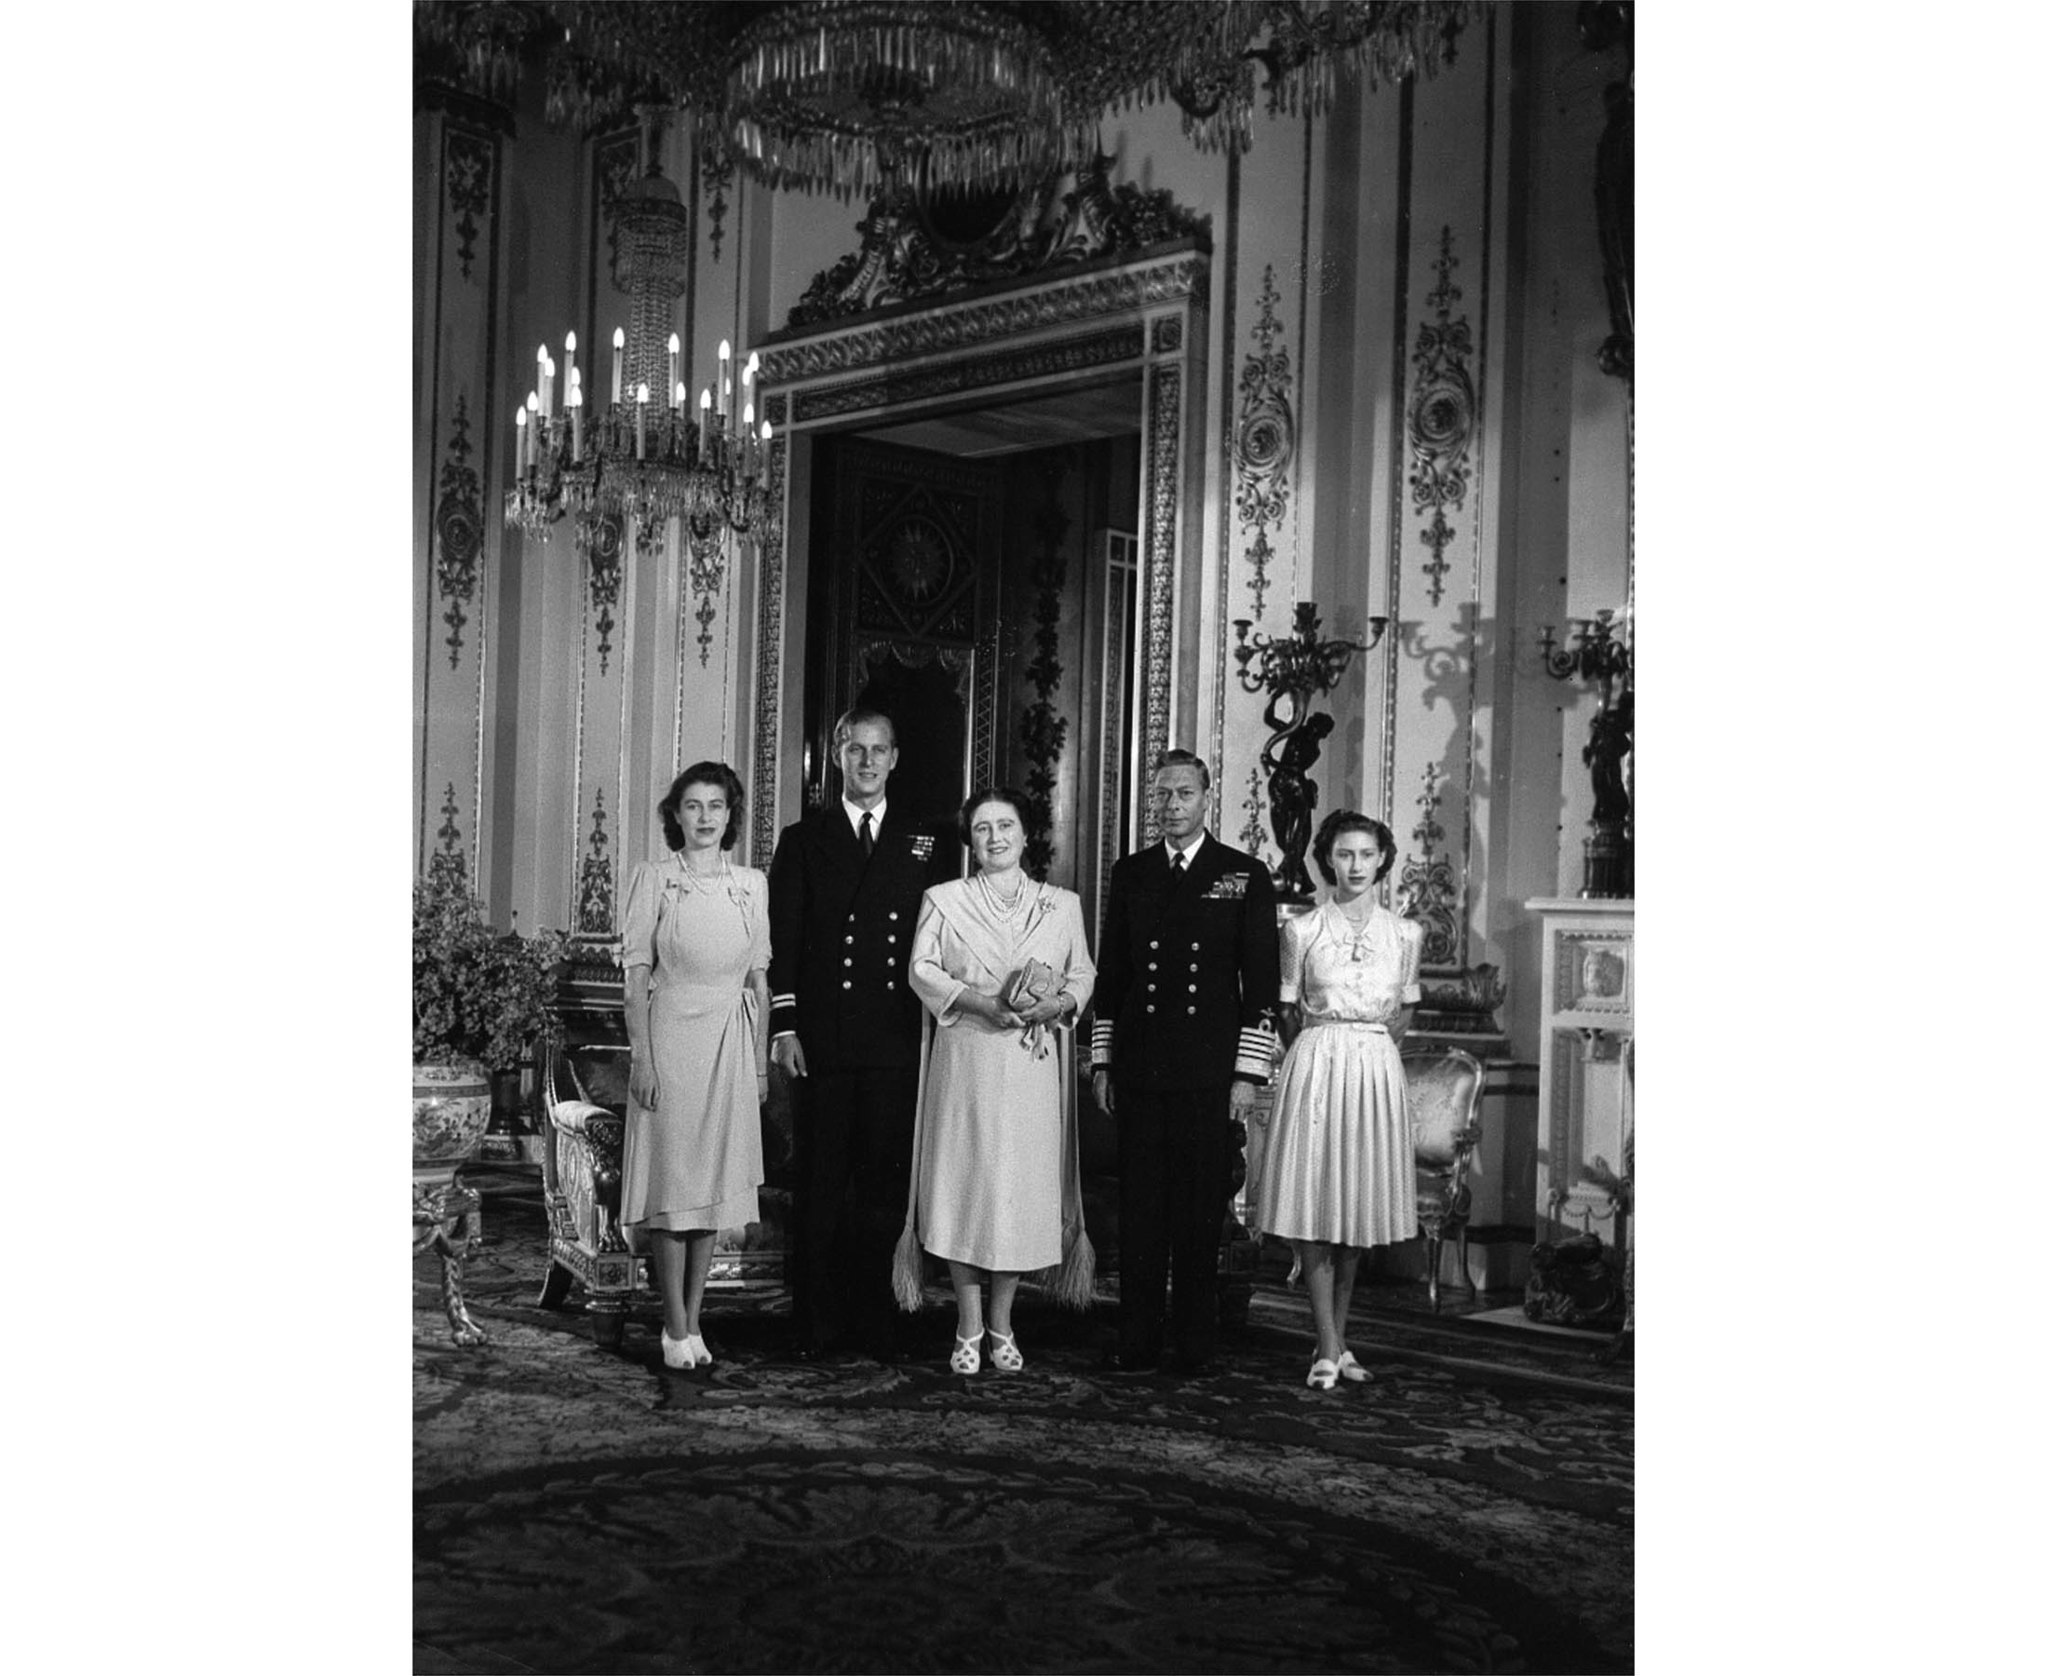 King George VI, Queen Elizabeth, Princess Elizabeth and Princess Margaret